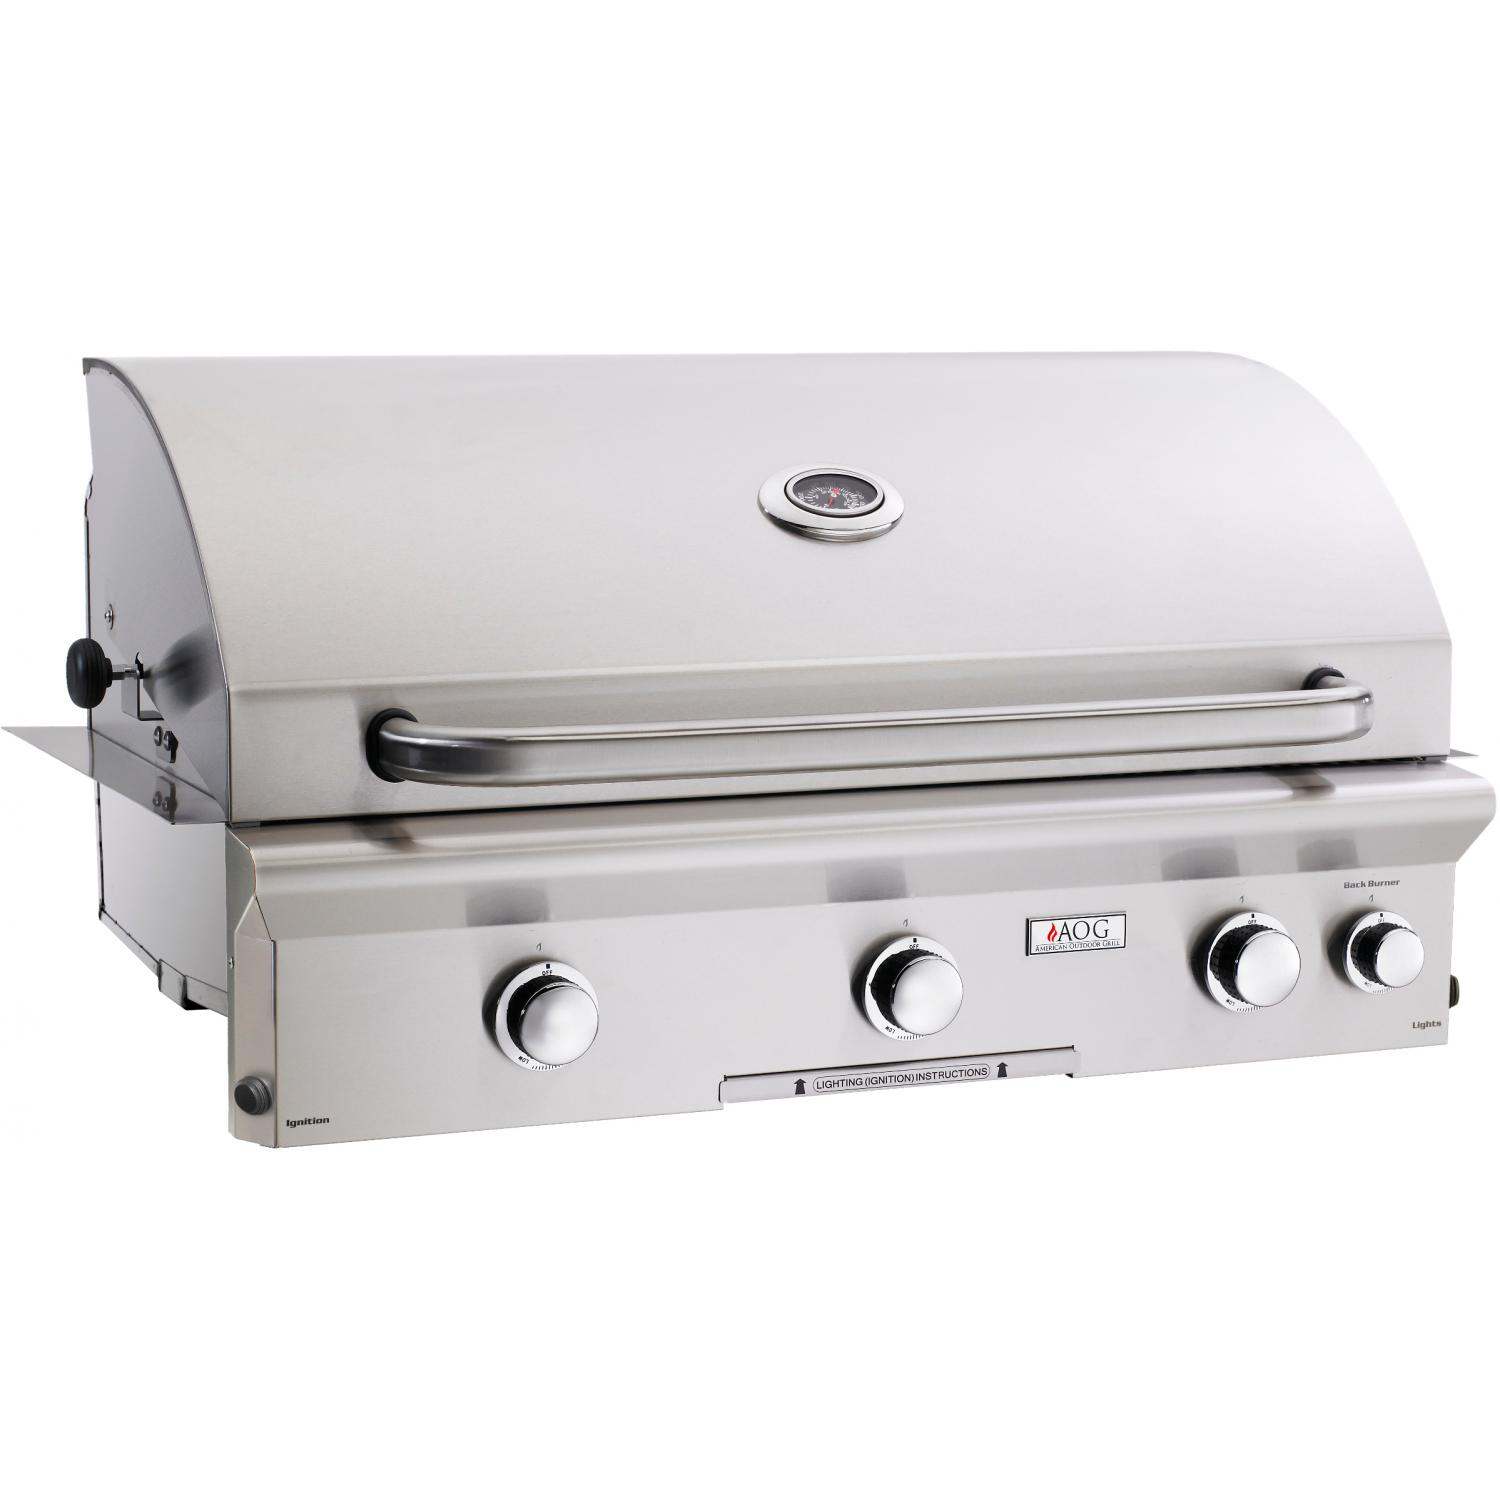 American Outdoor Grill L-Series 36-Inch Built-In Natural Gas Grill With Rotisserie 2894408